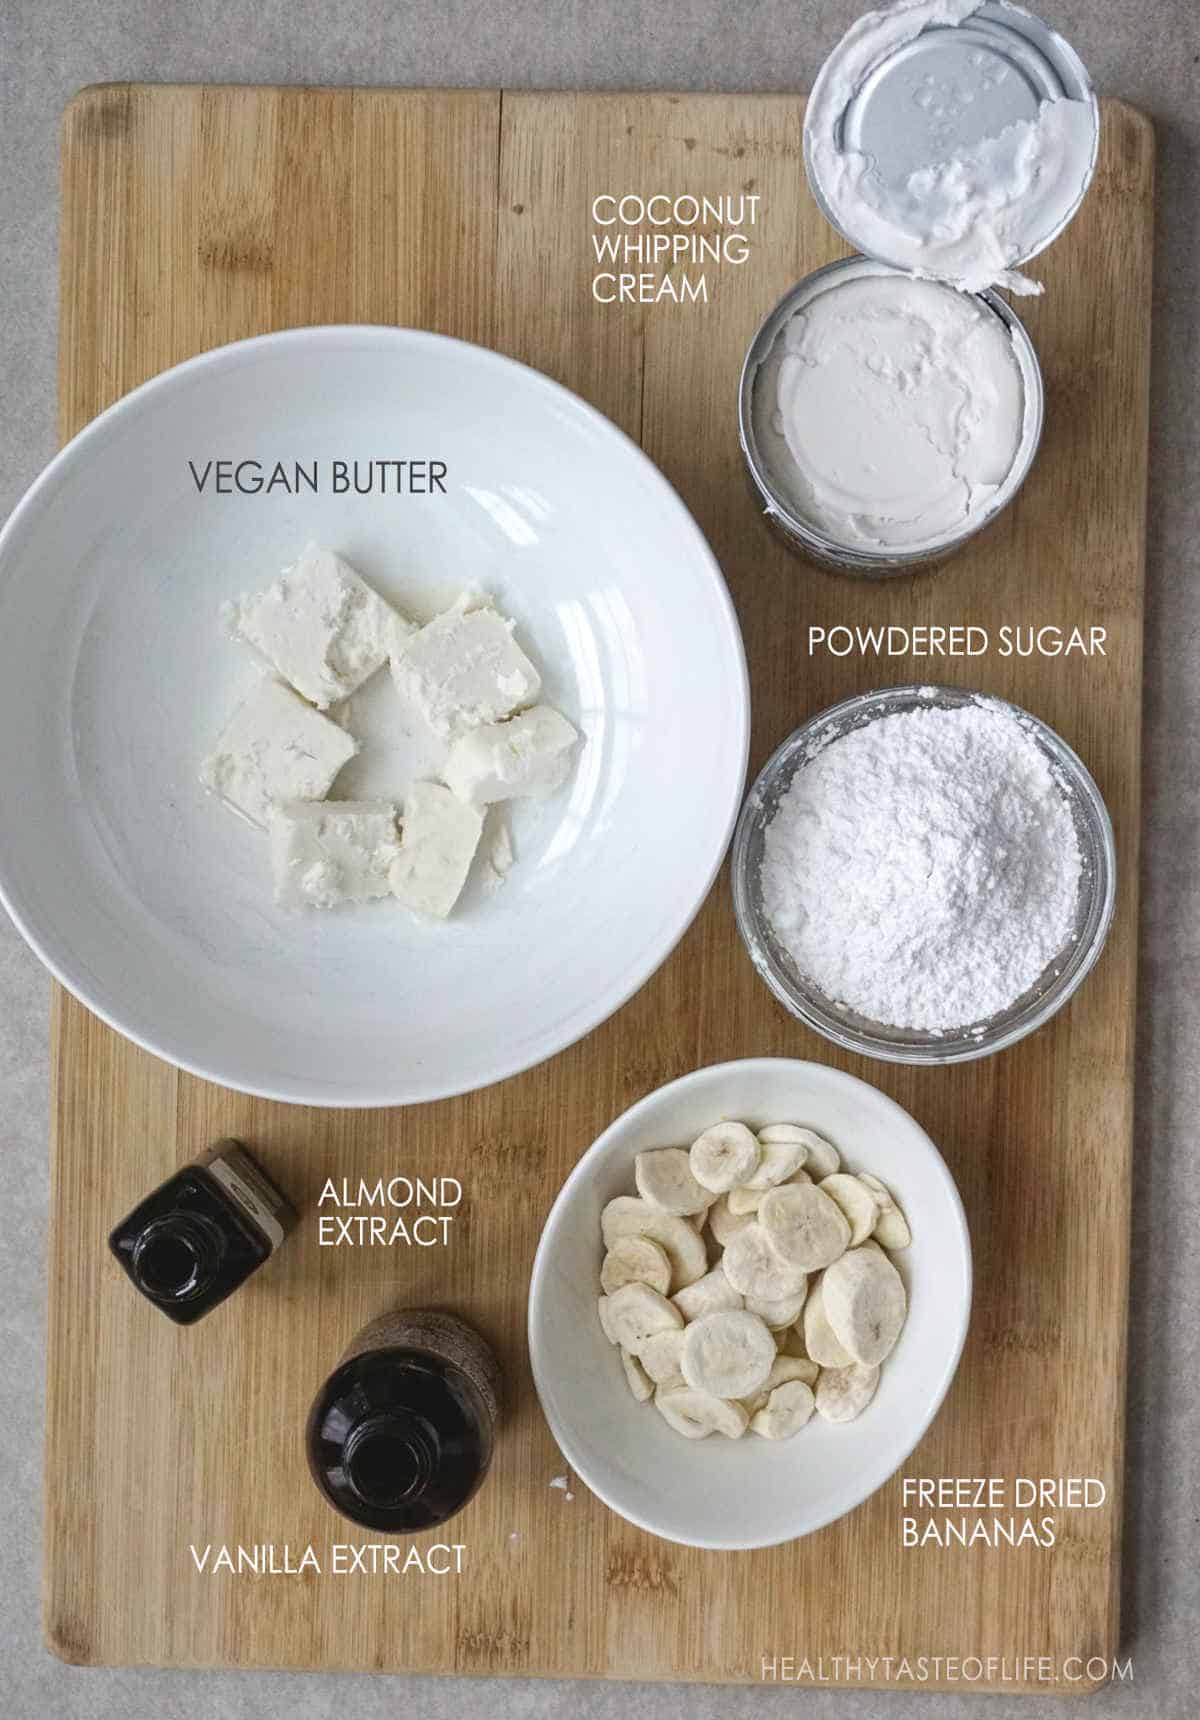 Dairy Free Frosting Ingredients For Gluten Free Banana Cake